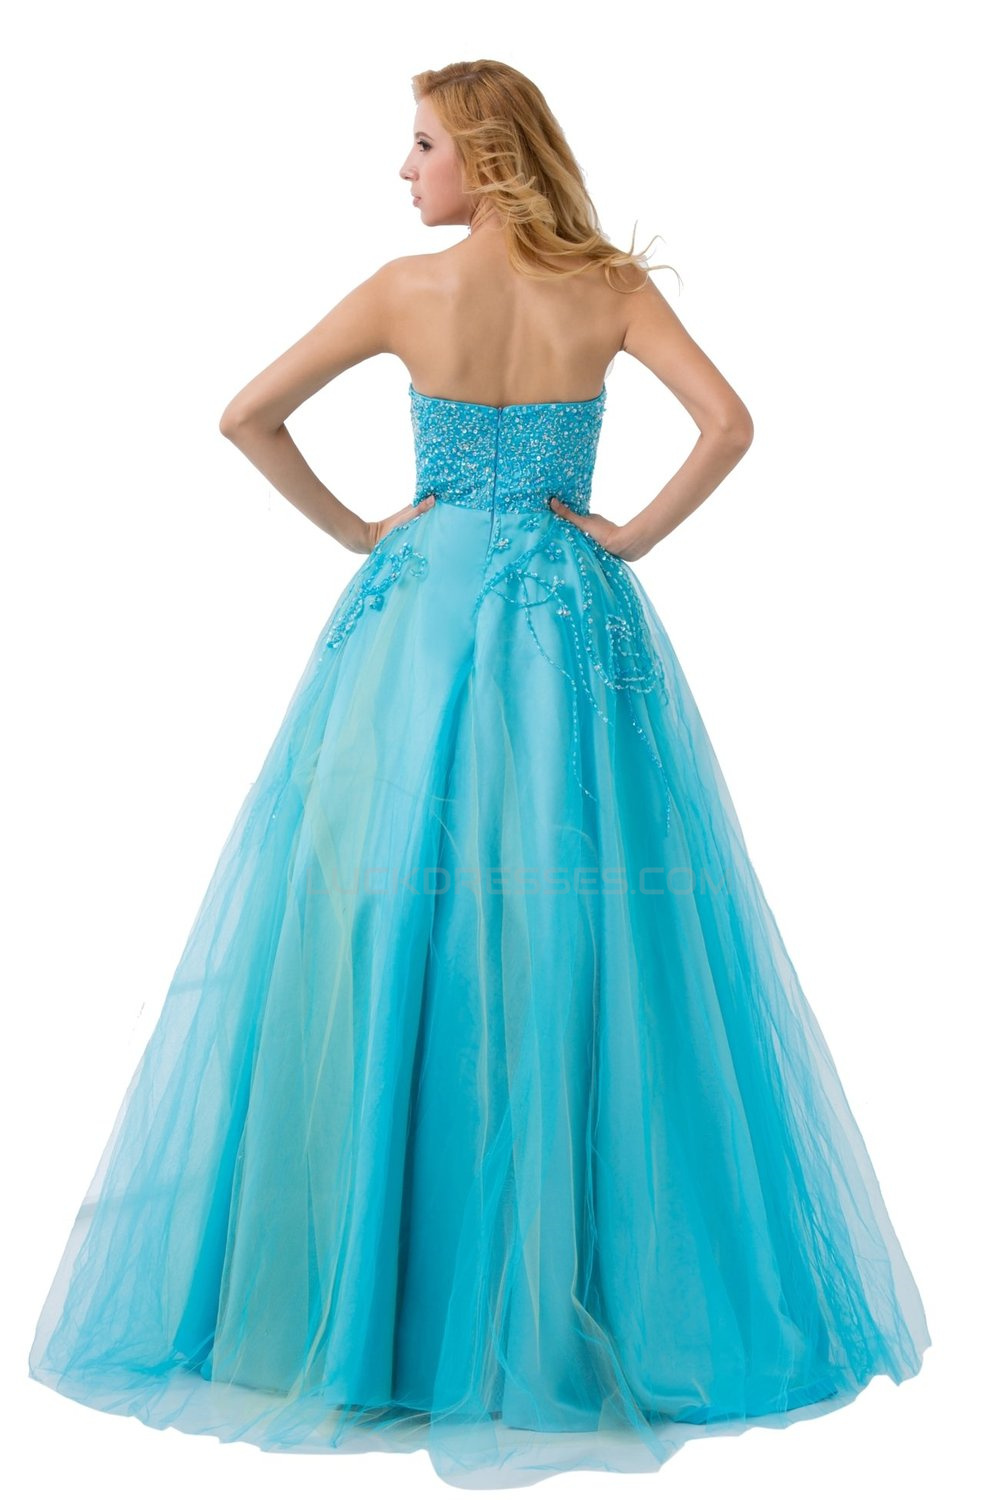 Line Strapless Beaded Long Blue Prom Evening Formal Party Dresses ...